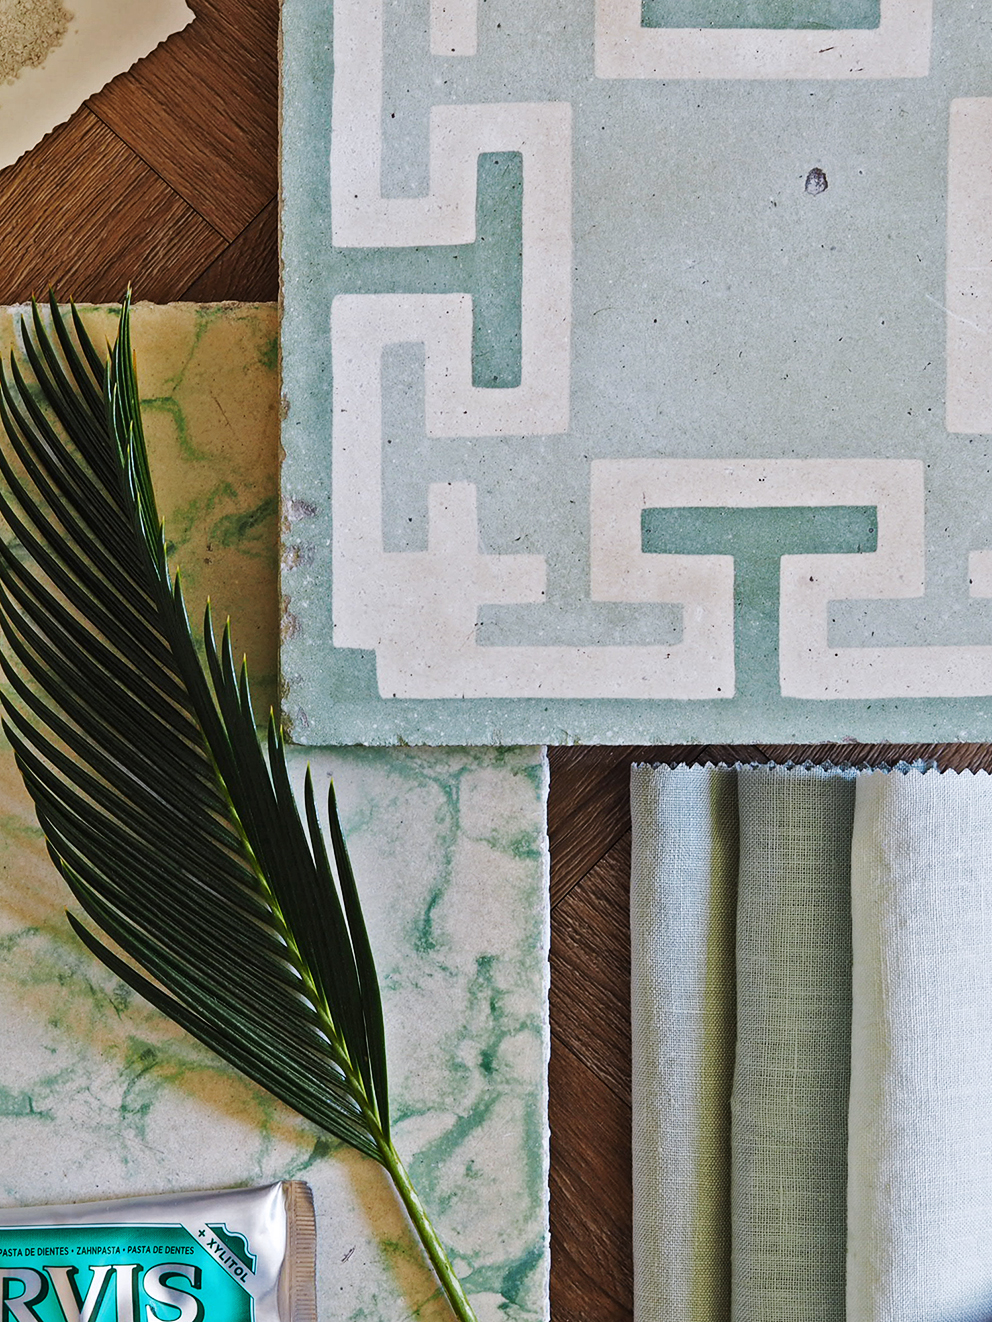 French For Pineapple Blog - Maitland & Poate Antinque Tiles - Green Tiles